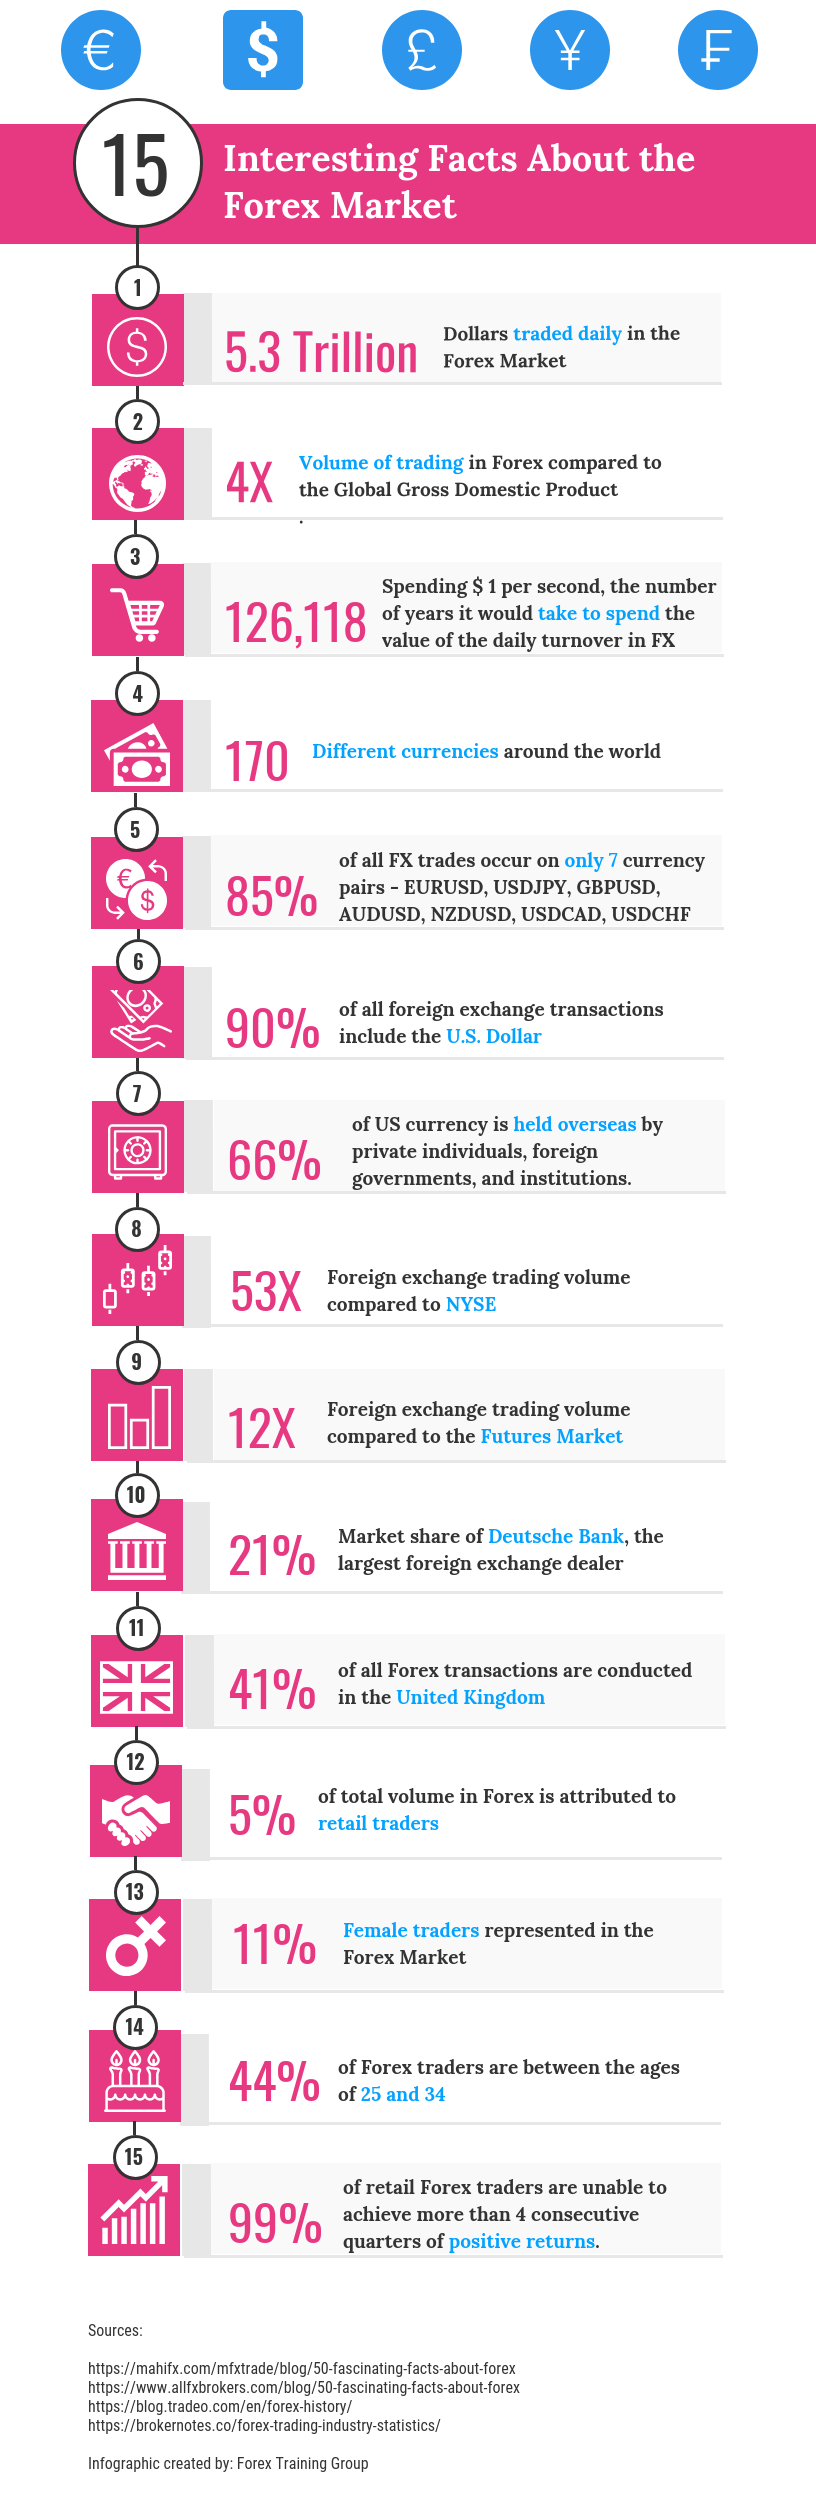 Interesting facts about forex market